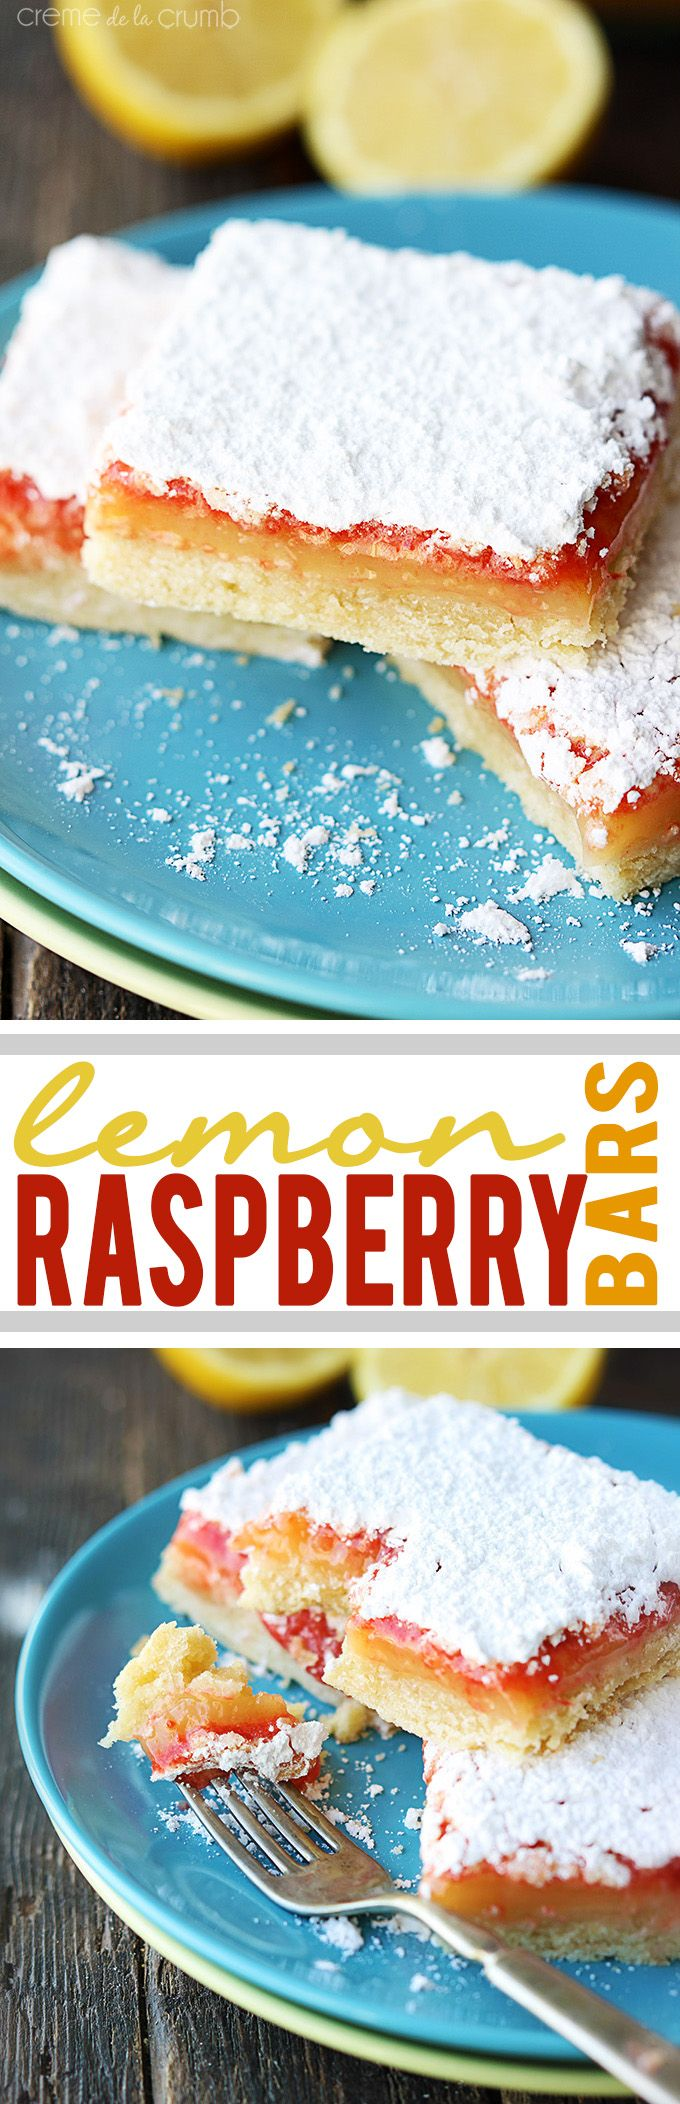 Raspberry Lemon Bars - like classic lemon bars but with an added layer of raspberry deliciousness!